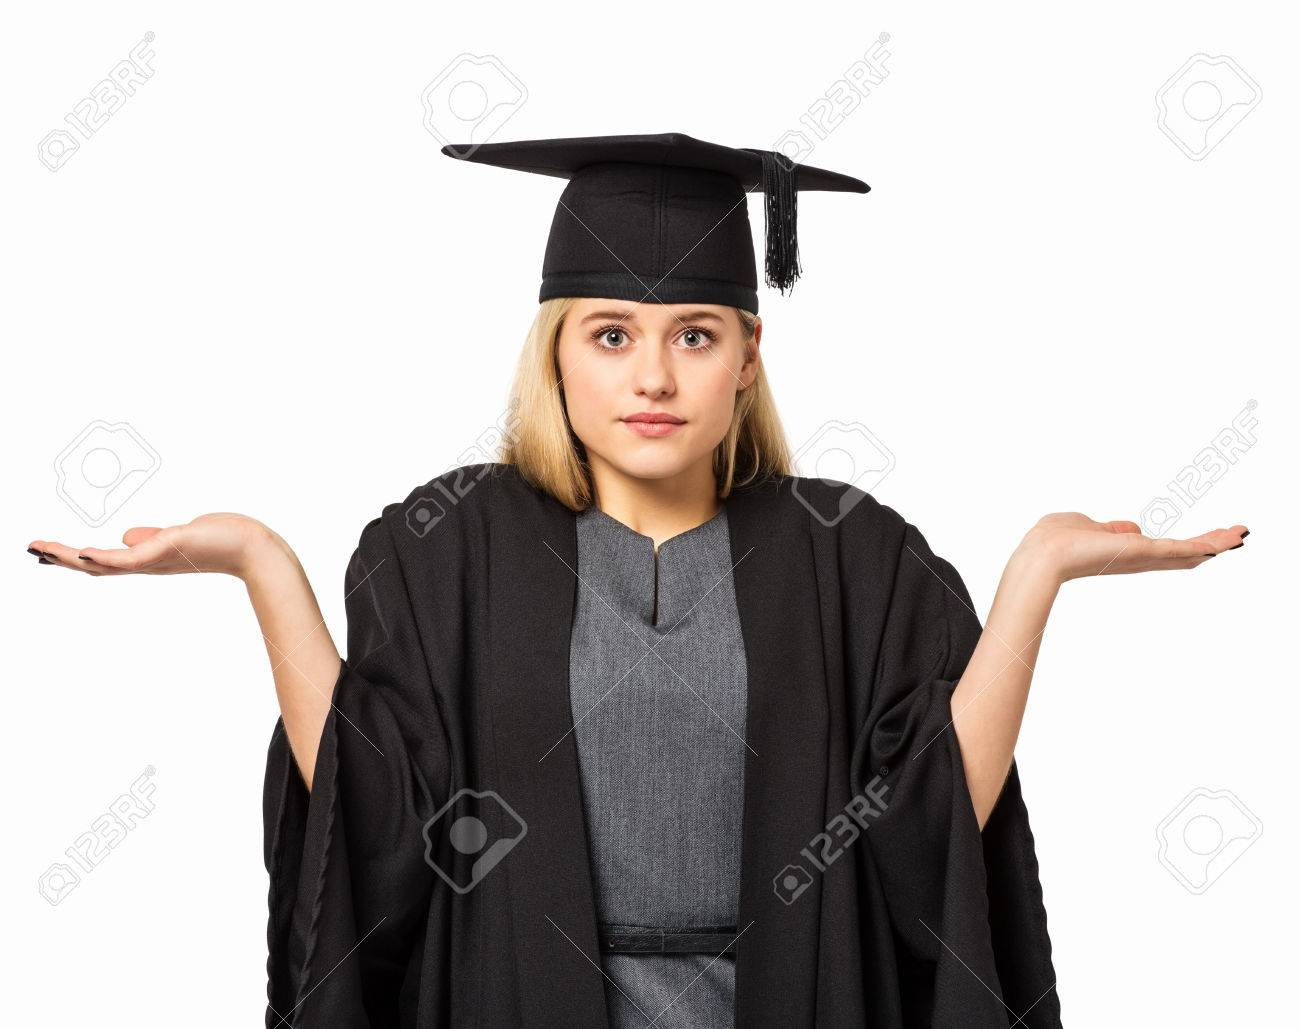 Portrait Of College Student In Graduation Gown And Mortar Board ...